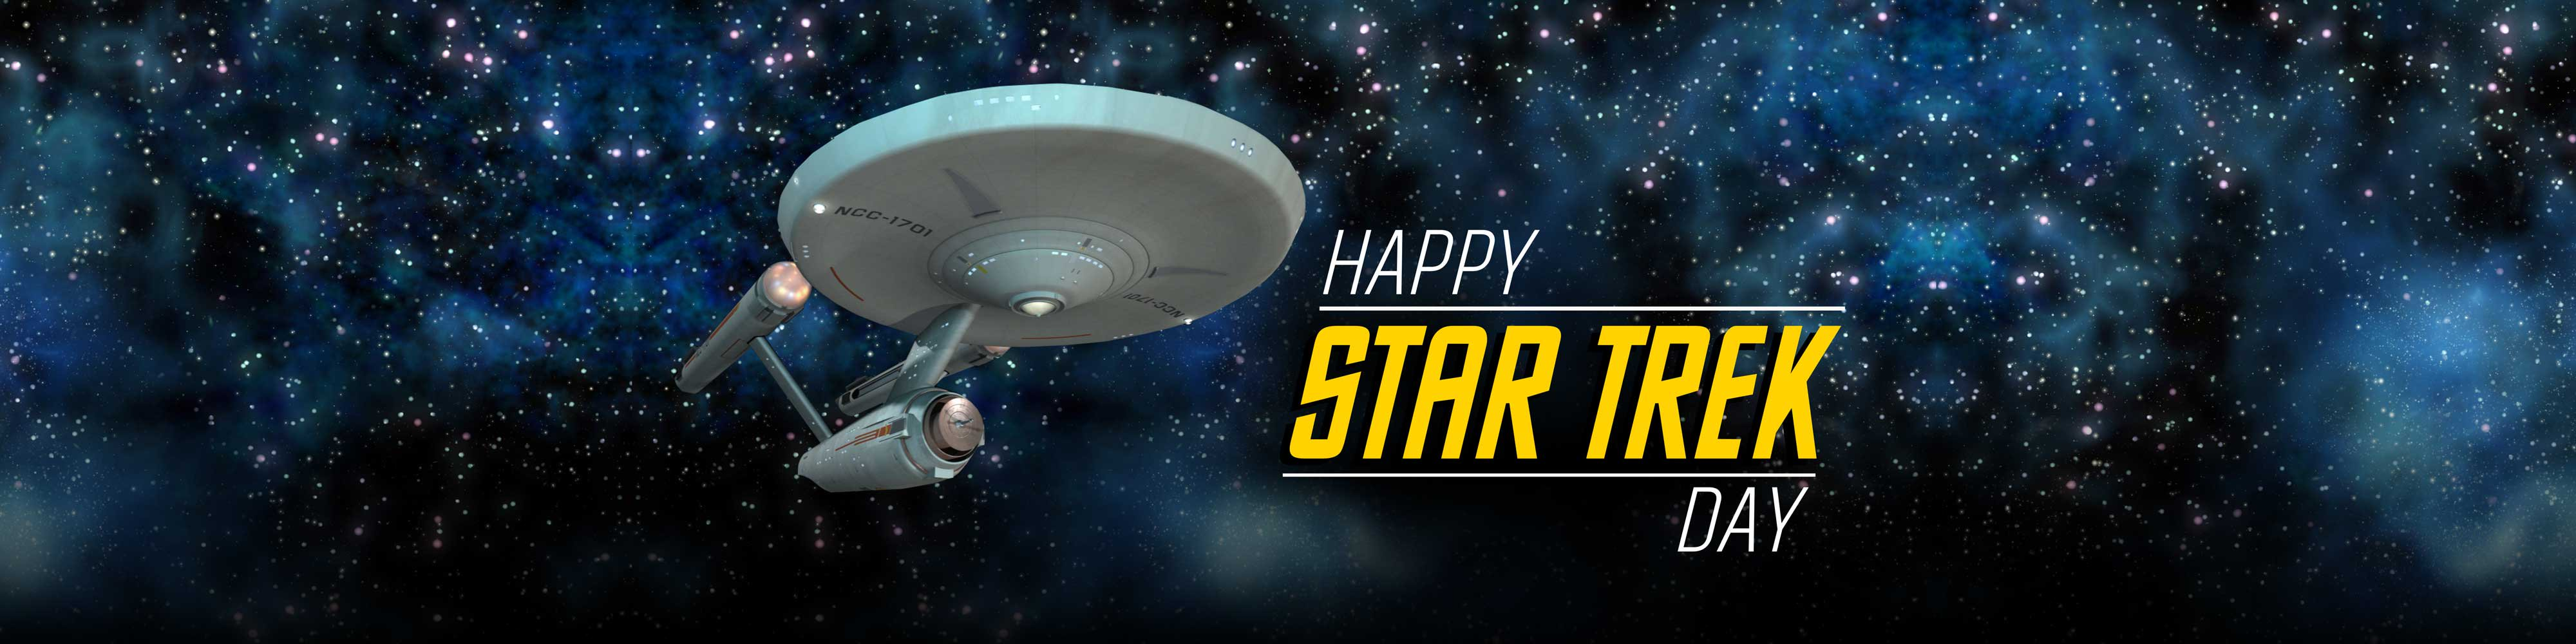 Happy Star Trek Day